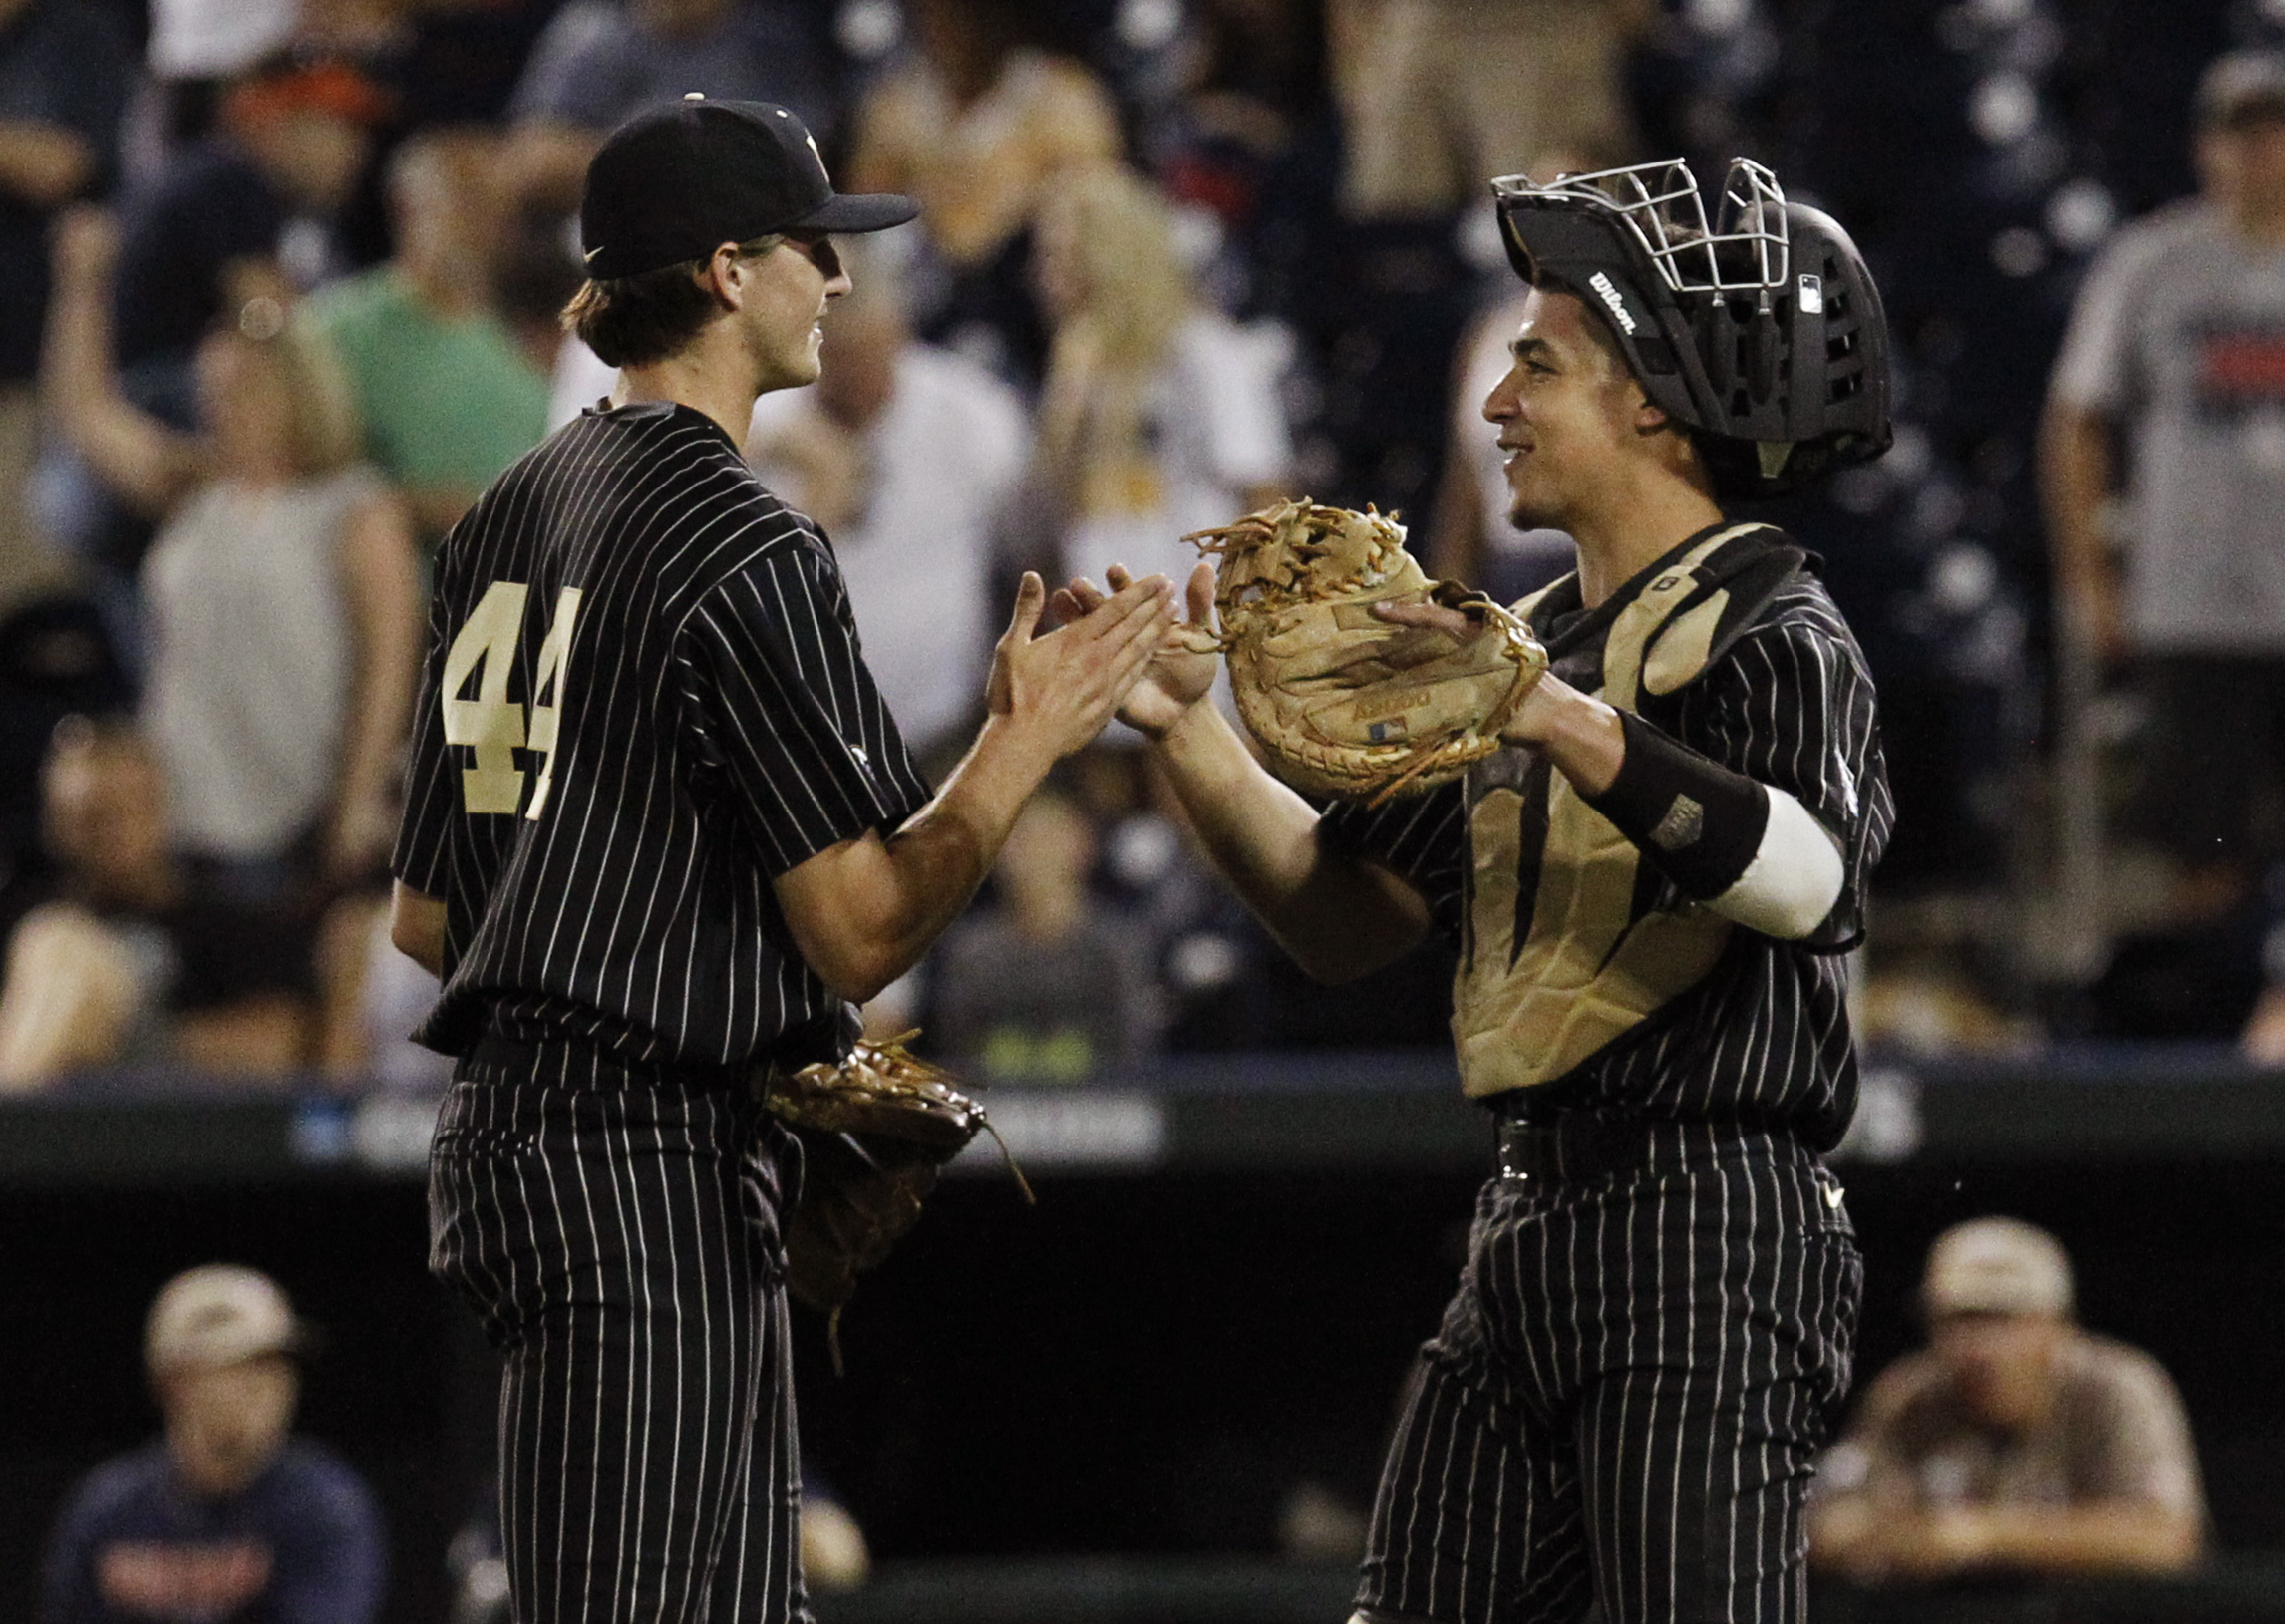 Karl Ellison (right) giving high fives to his pitcher, Kyle Wright (left).